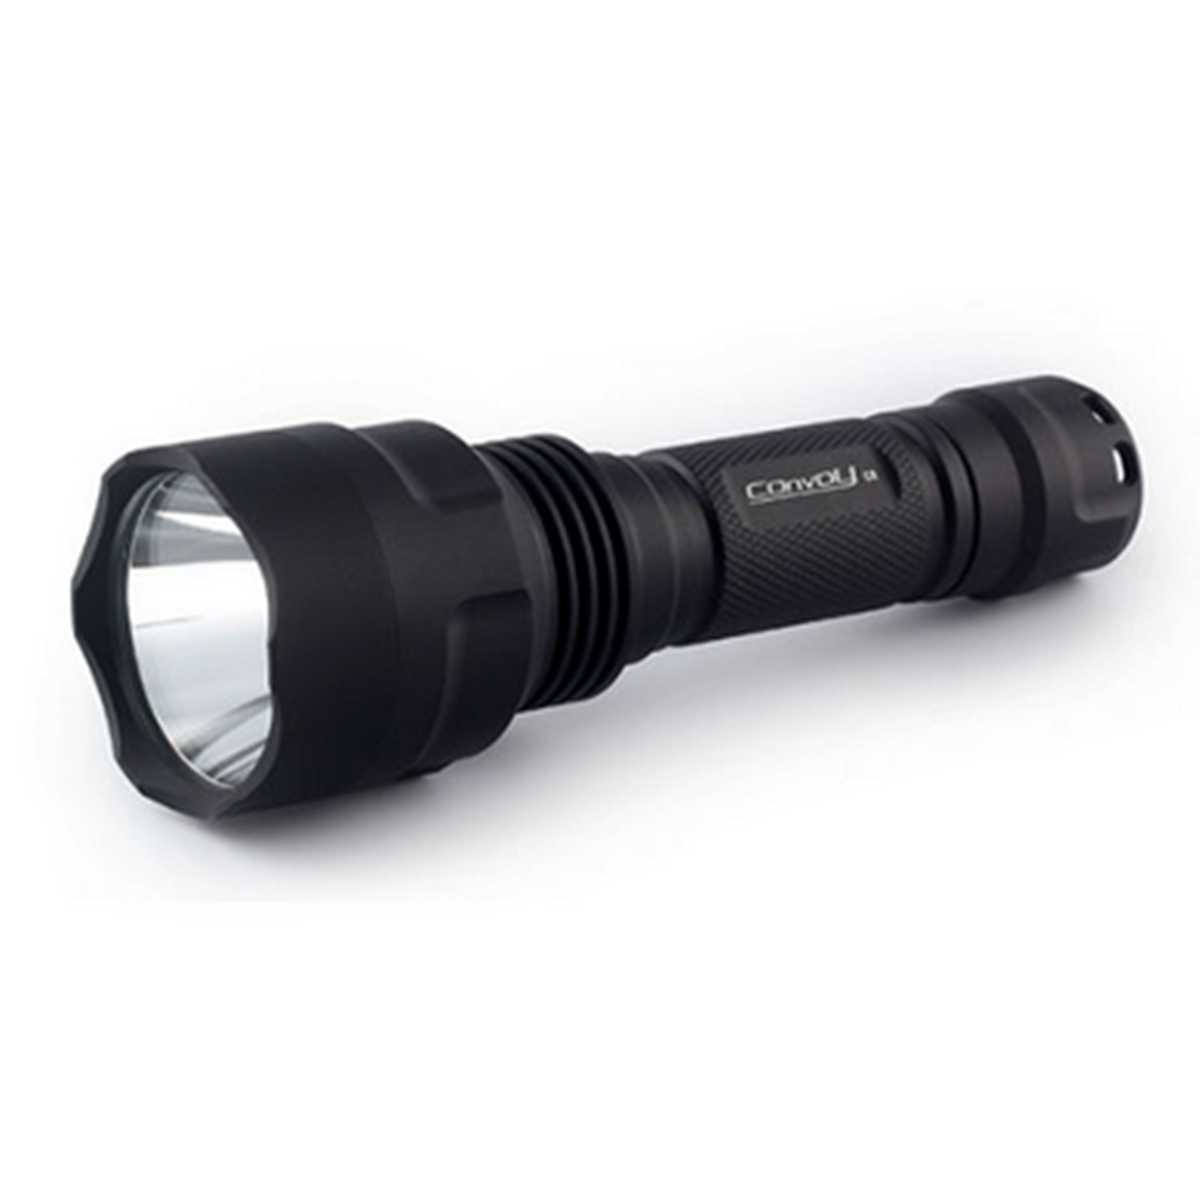 NEW Convoy Aluminum alloy Waterproof C8 AK47 7135*6 8 Modes 860LM  Integrated Head LED Flashlight Torch For Outdoor Sports